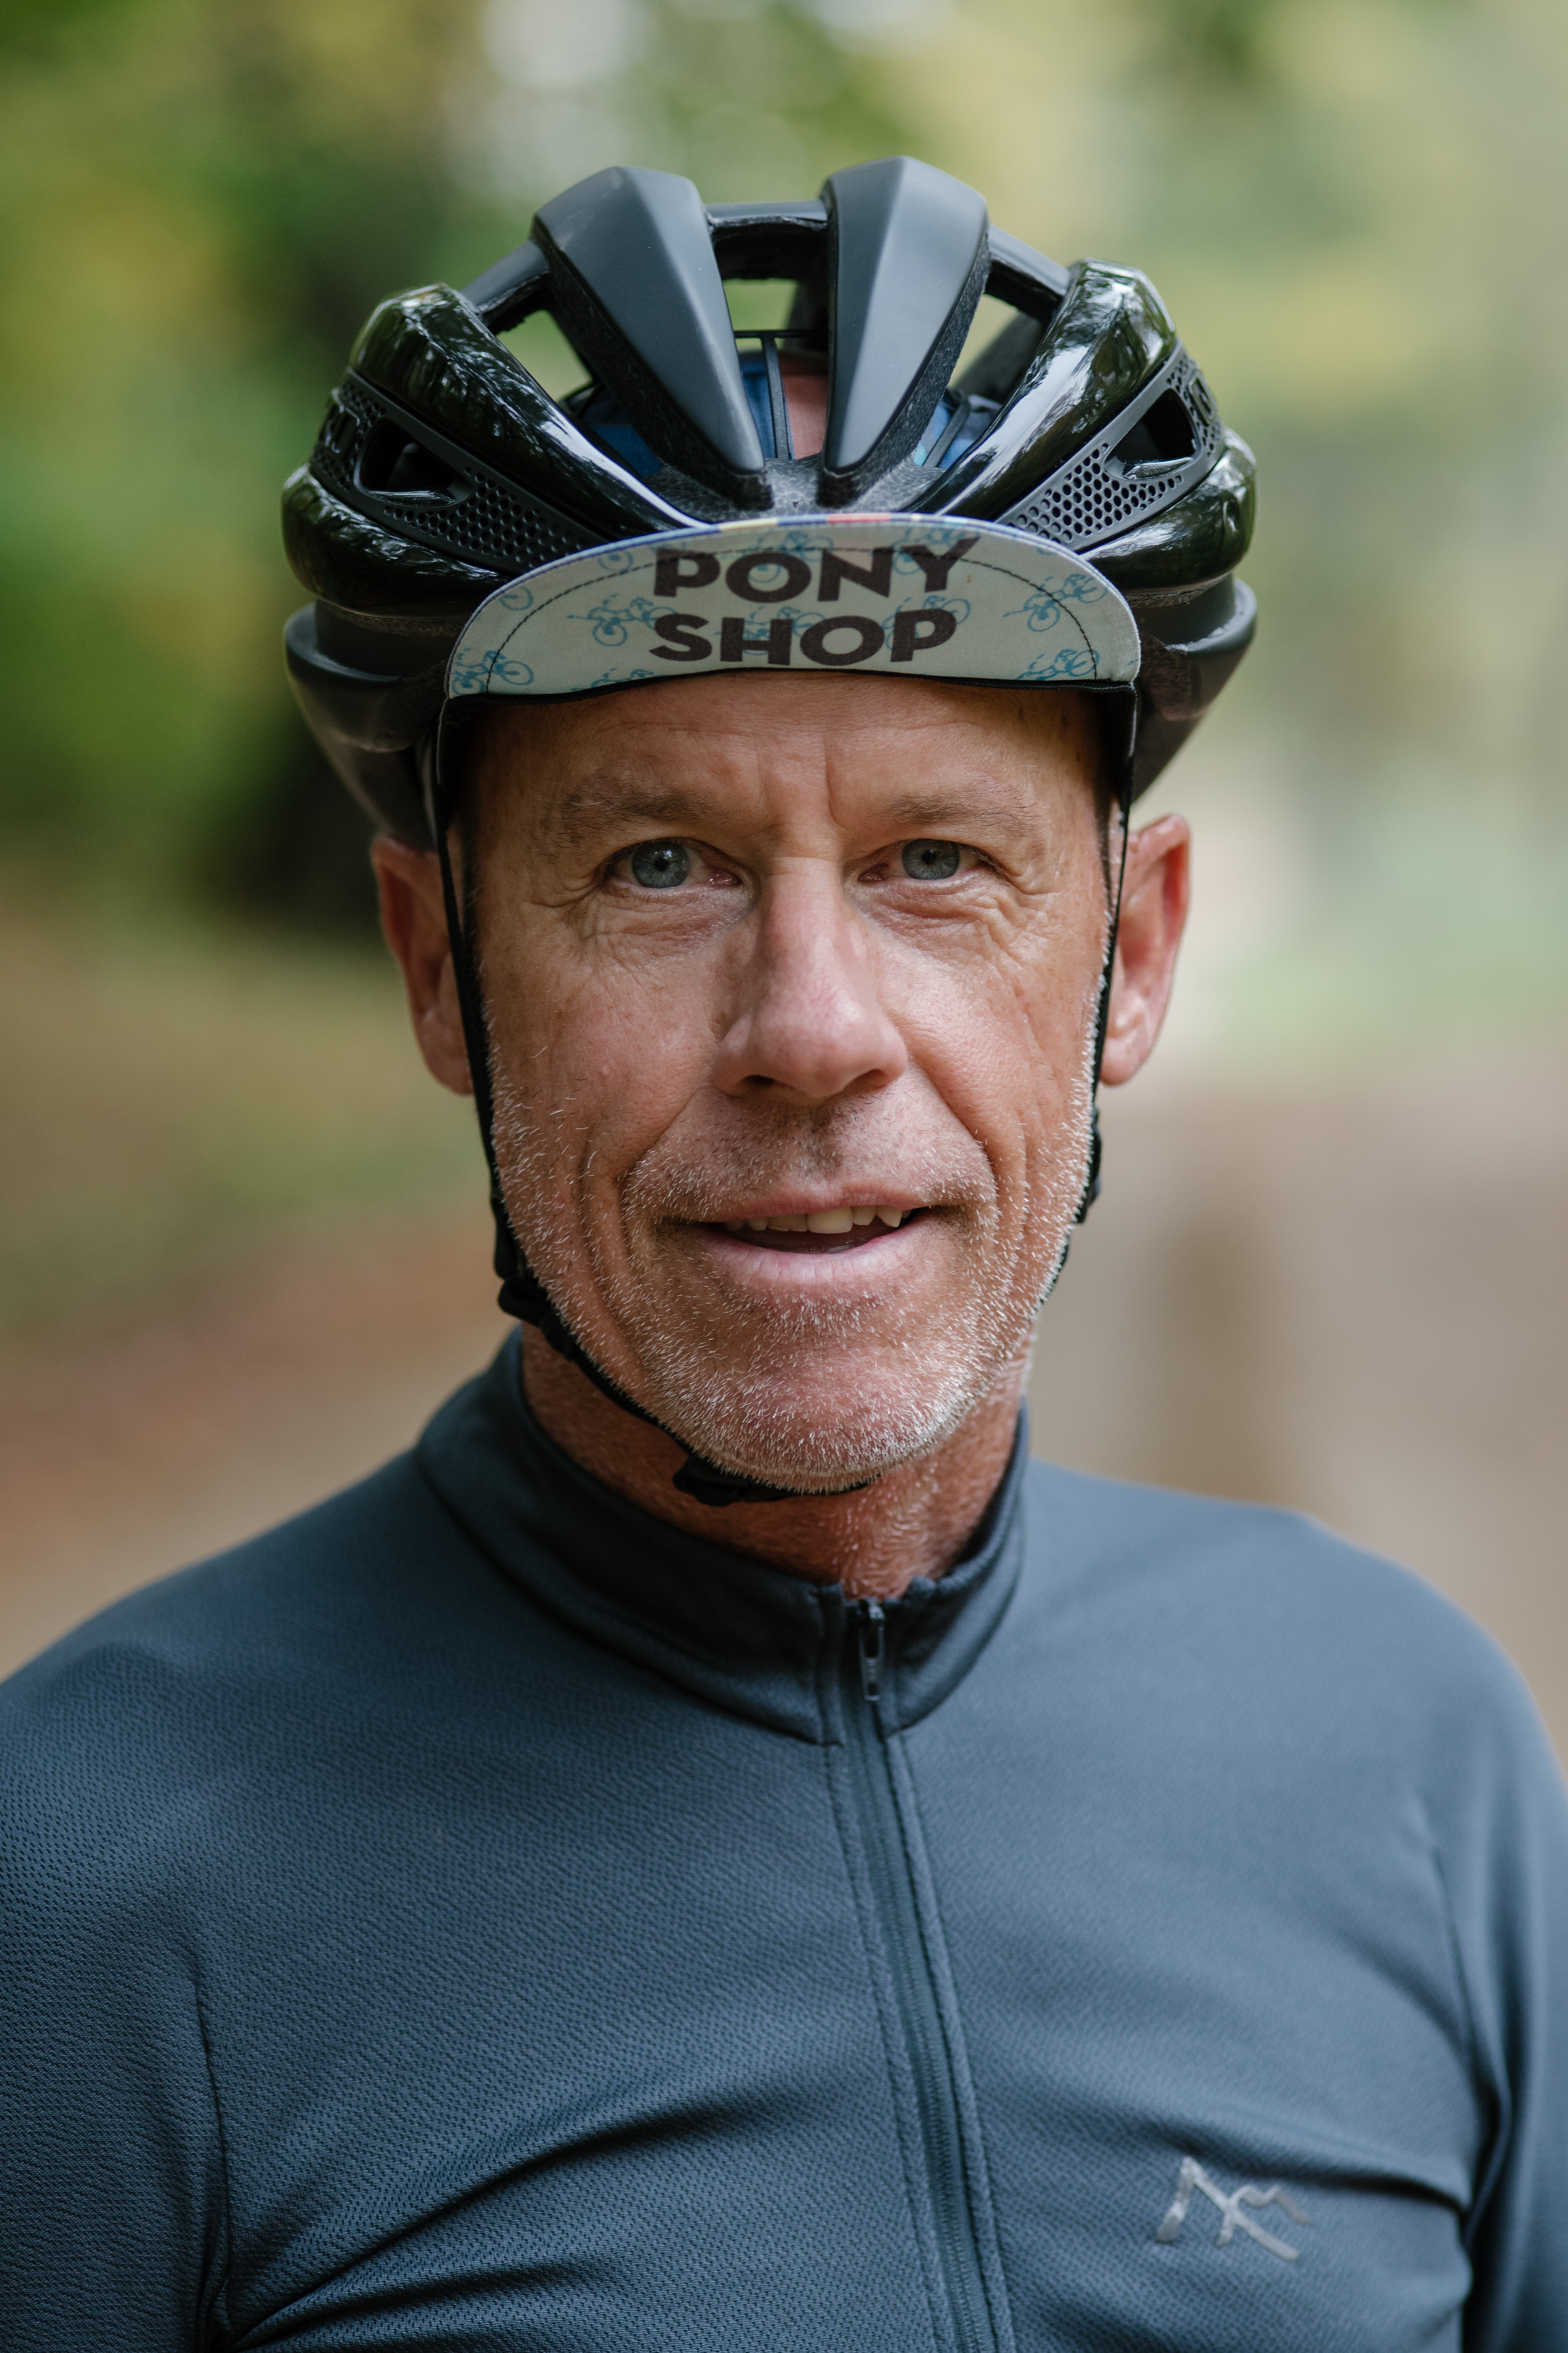 - Mountain, gravel and cyclocross racing are spirit sisters to rallying, and Thom gravitated toward them. He could get up early, knock out a race and be home with the family for the day.